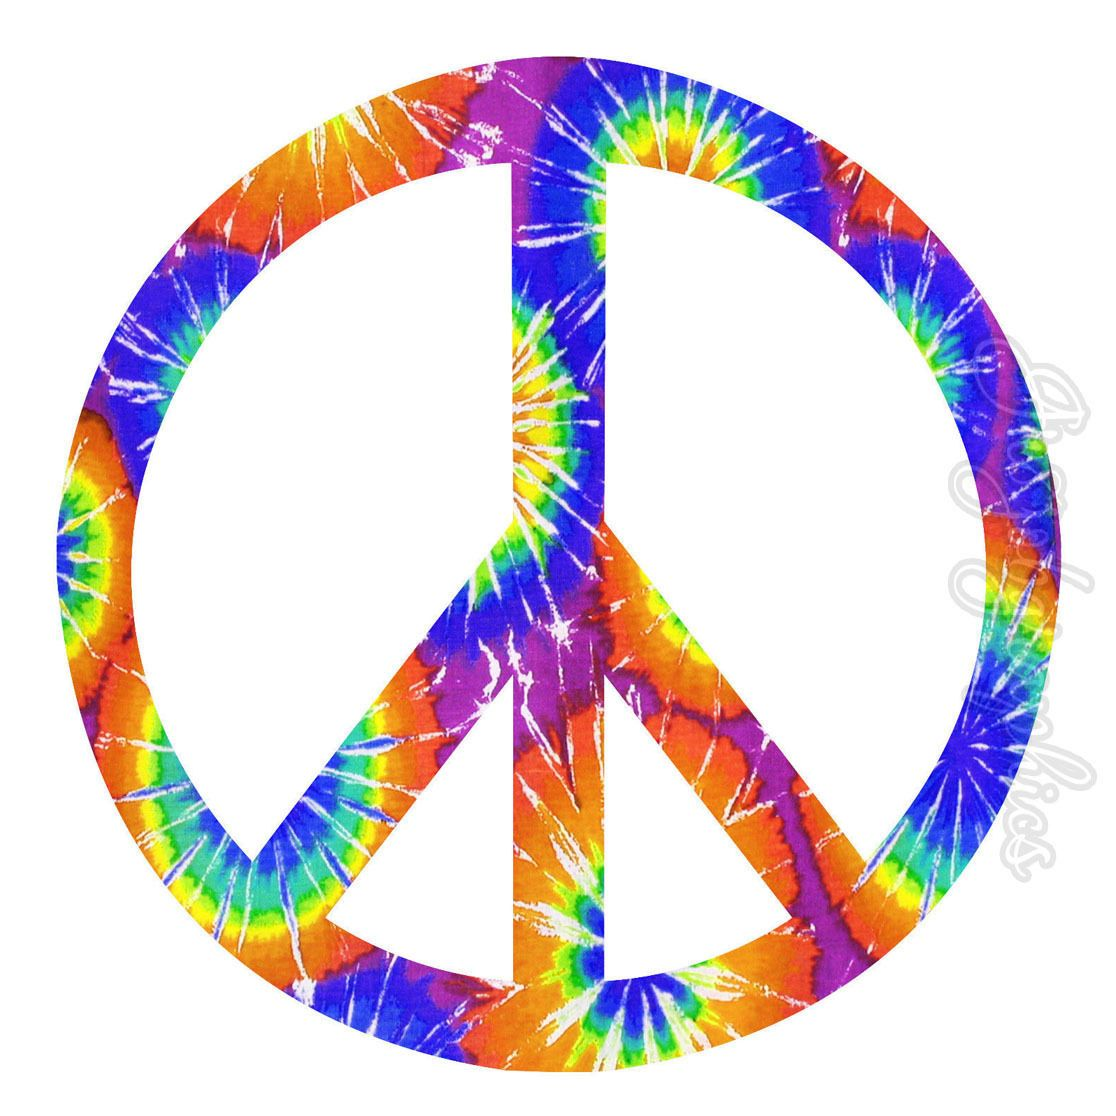 Peace Sign Tie Dye Wall Decal Wall Art Love Peace Peel and Stick Wall Sticker PC11 Wall Art Home Decor Vintage Retro Hippie 70s by VWAQ on Etsy